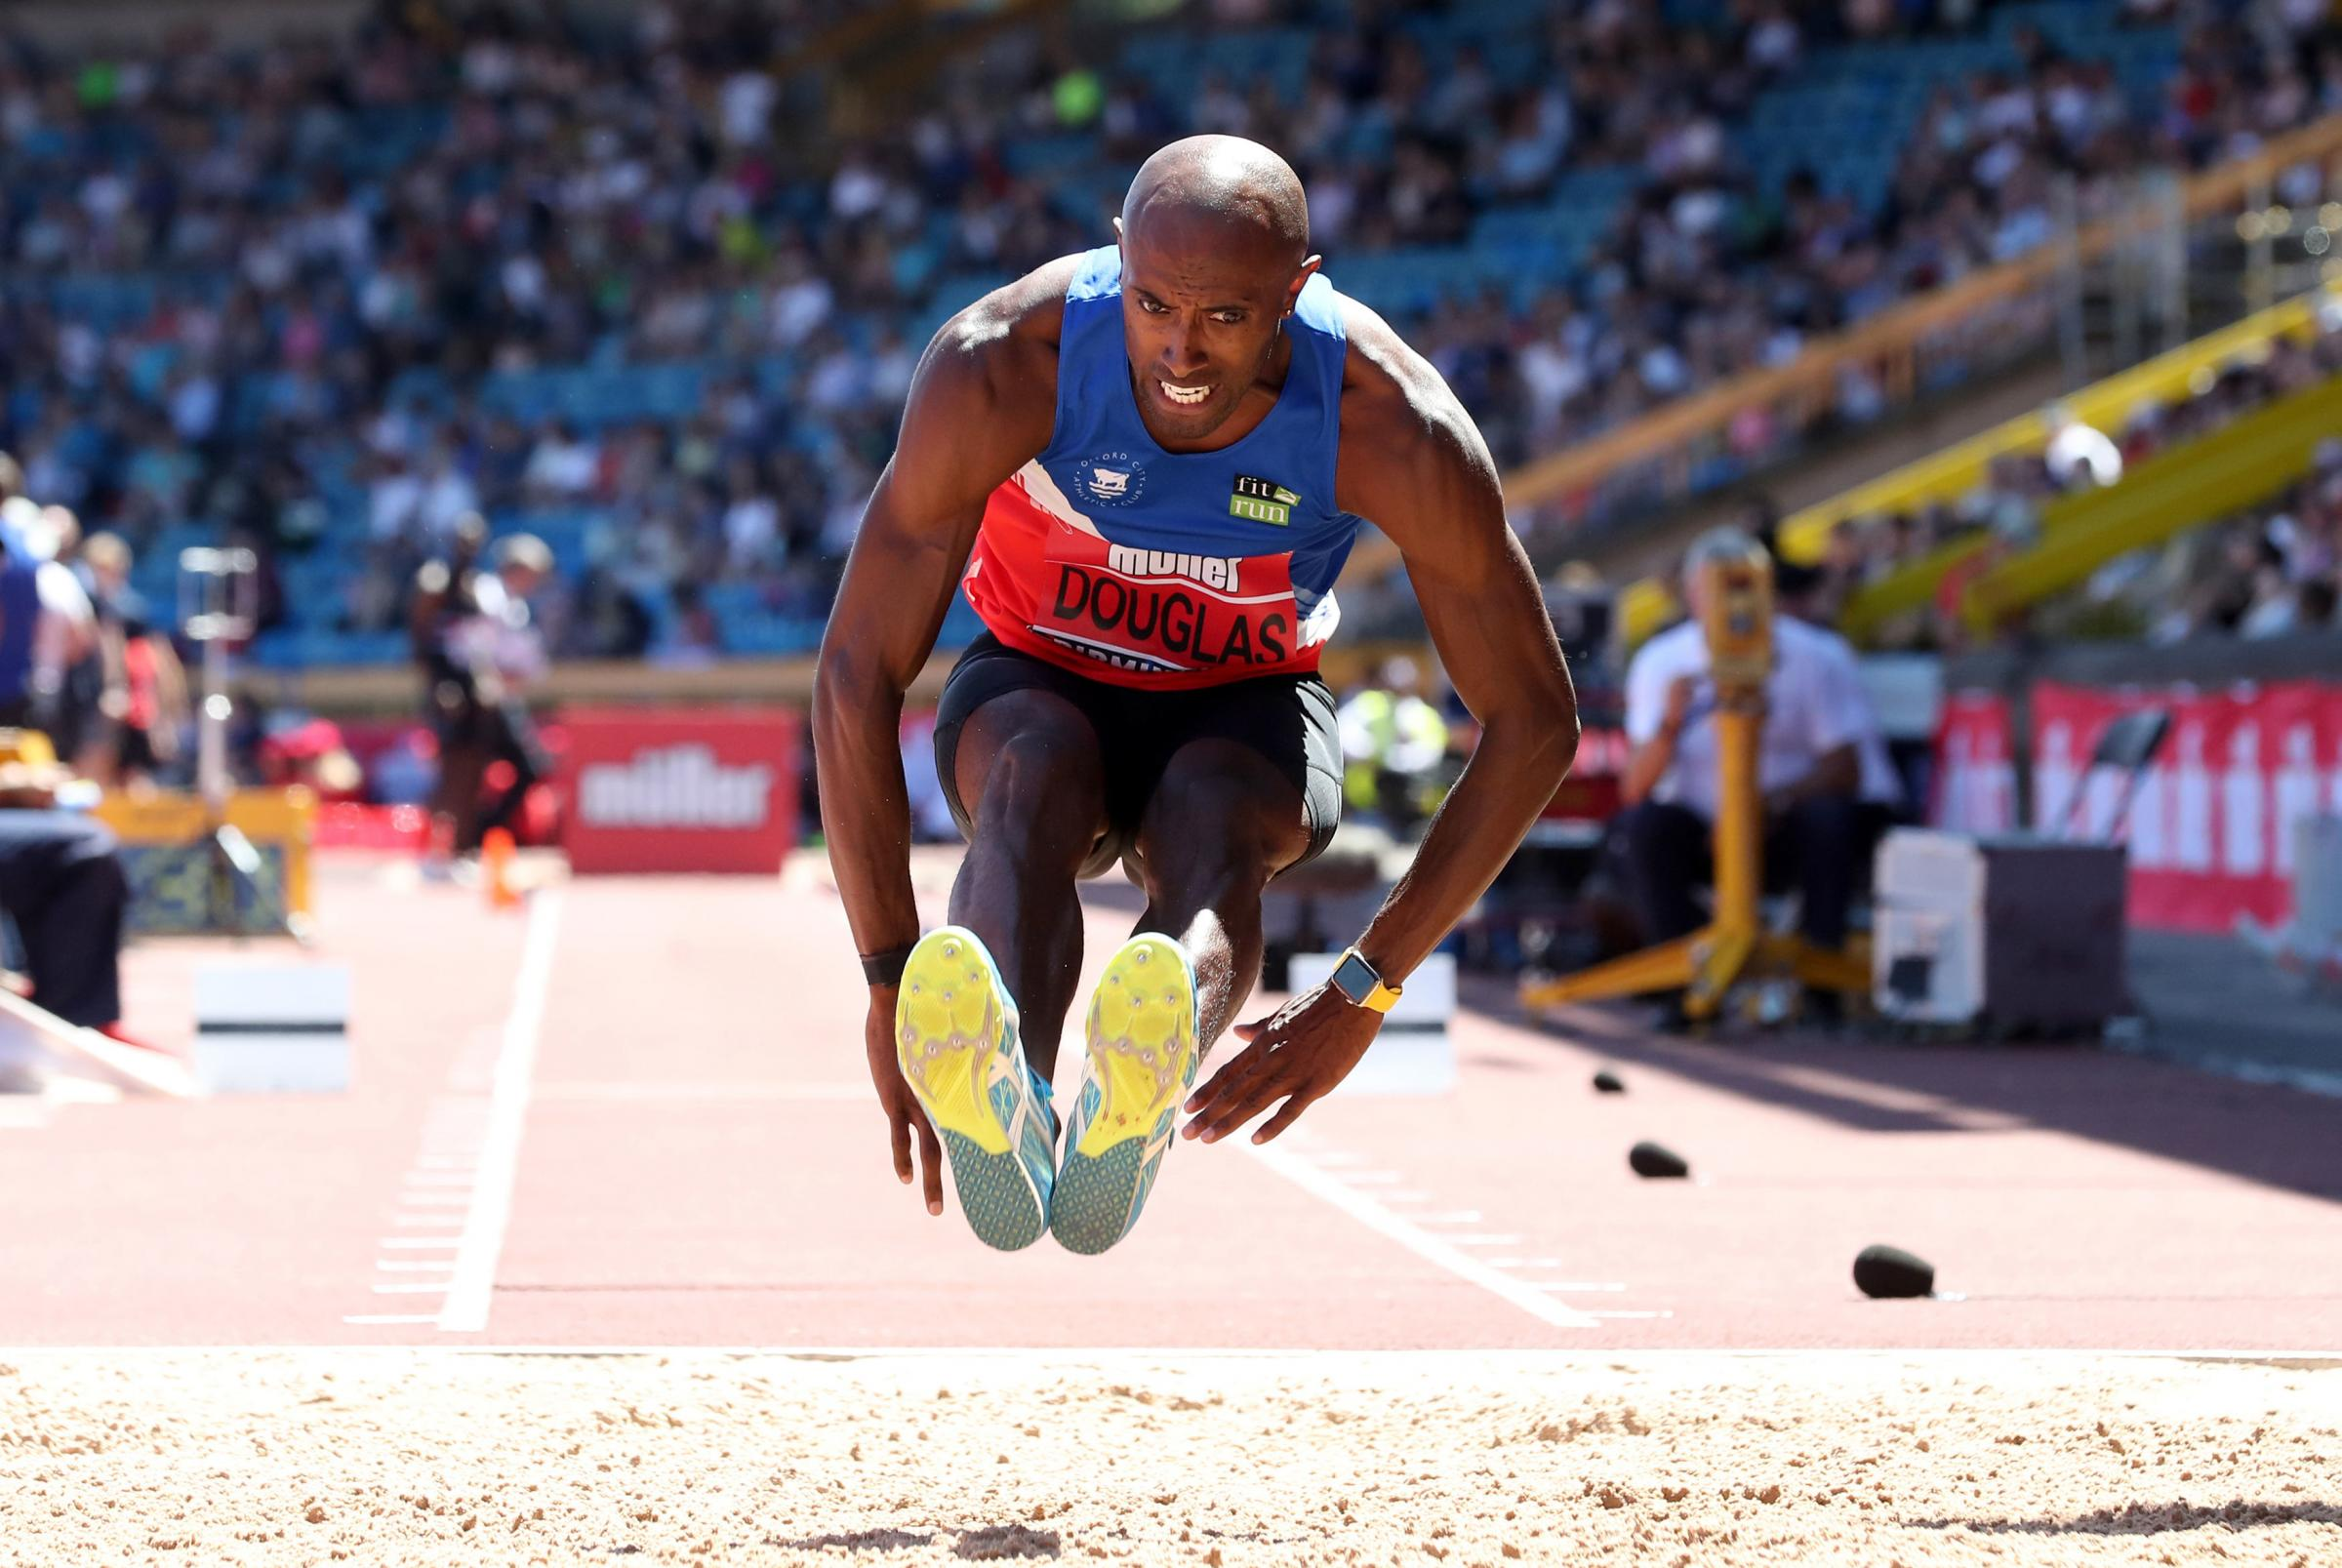 CONFIDENT: Nathan Douglas on the way to victory at the British Championships in June. The triple jumper is now aiming to impress on a bigger stage and challenge for a European medal         Picture: Martin Rickett/PA Wire